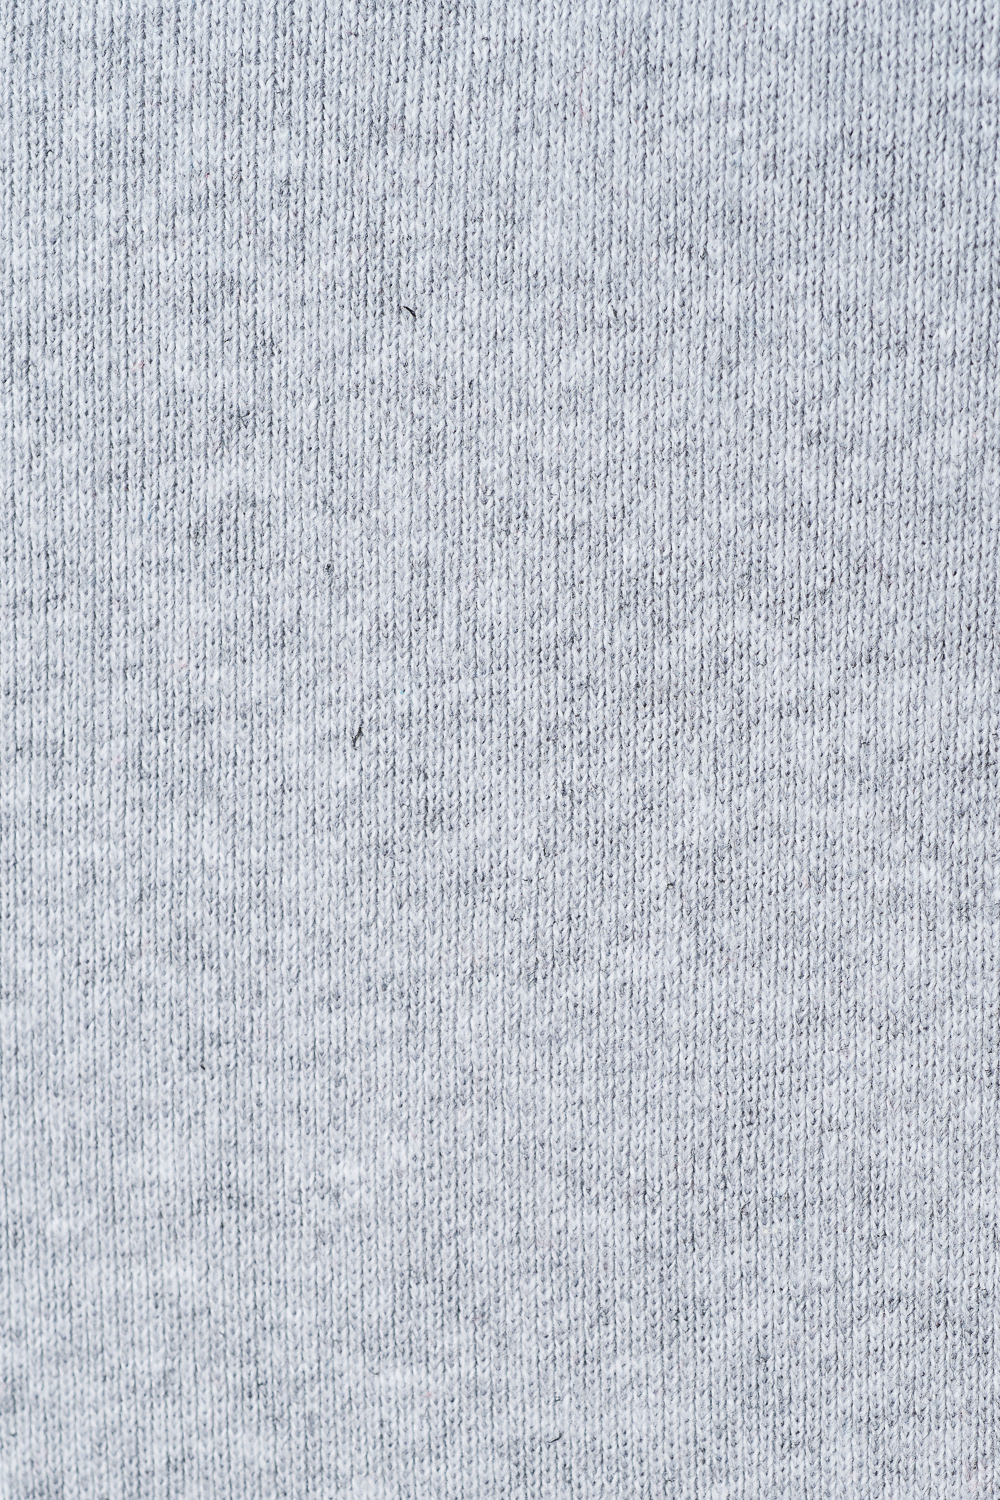 Heather Grey HJ.JPG